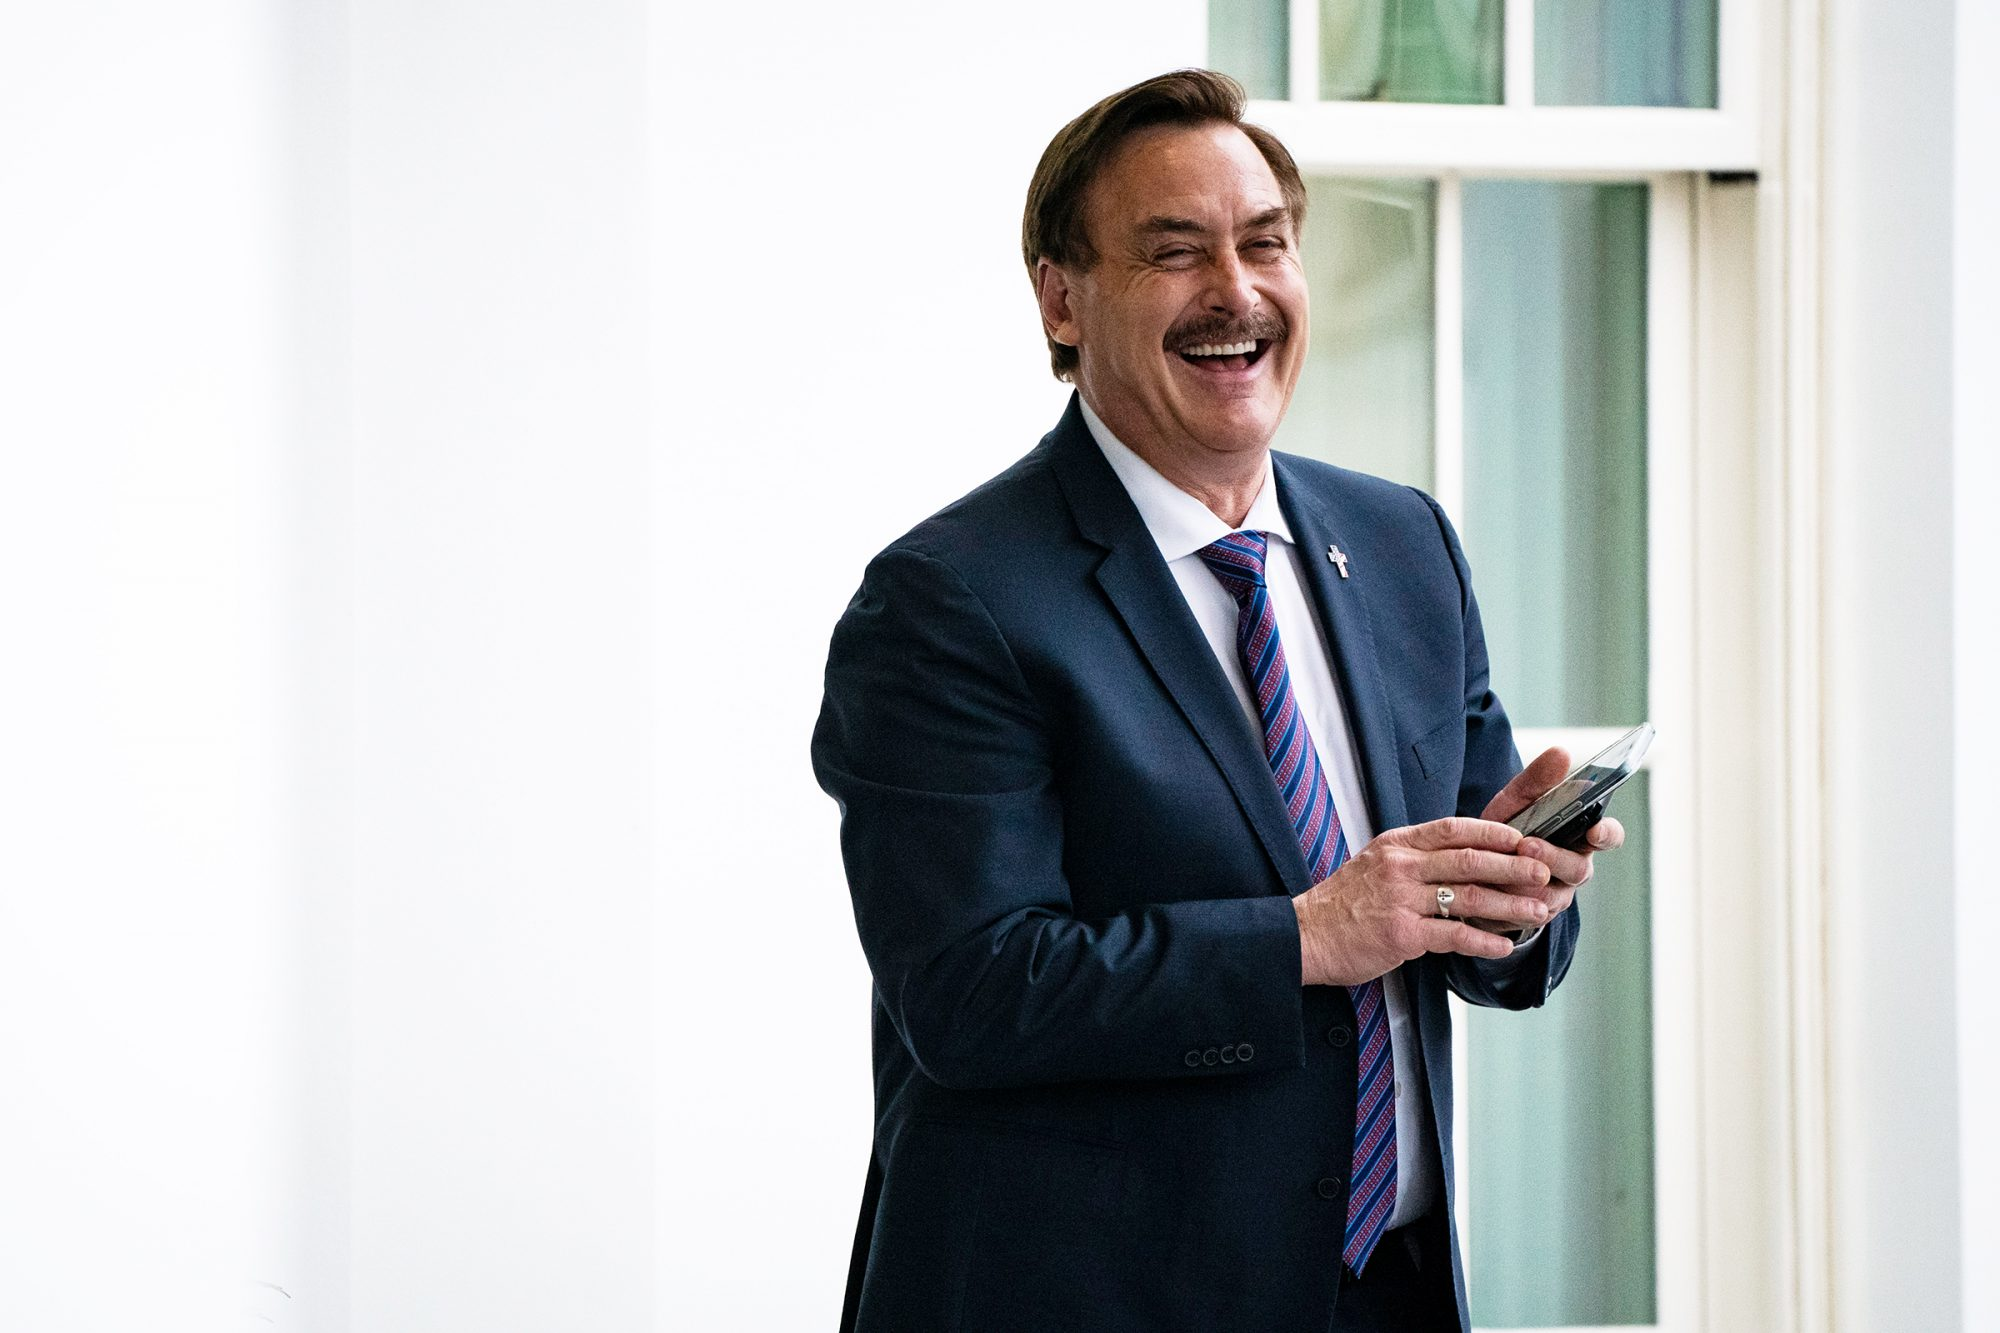 Jimmy Kimmel Tells MyPillow CEO Mike Lindell 'I Worry About You' amid Baseless Push Against 2020 Election